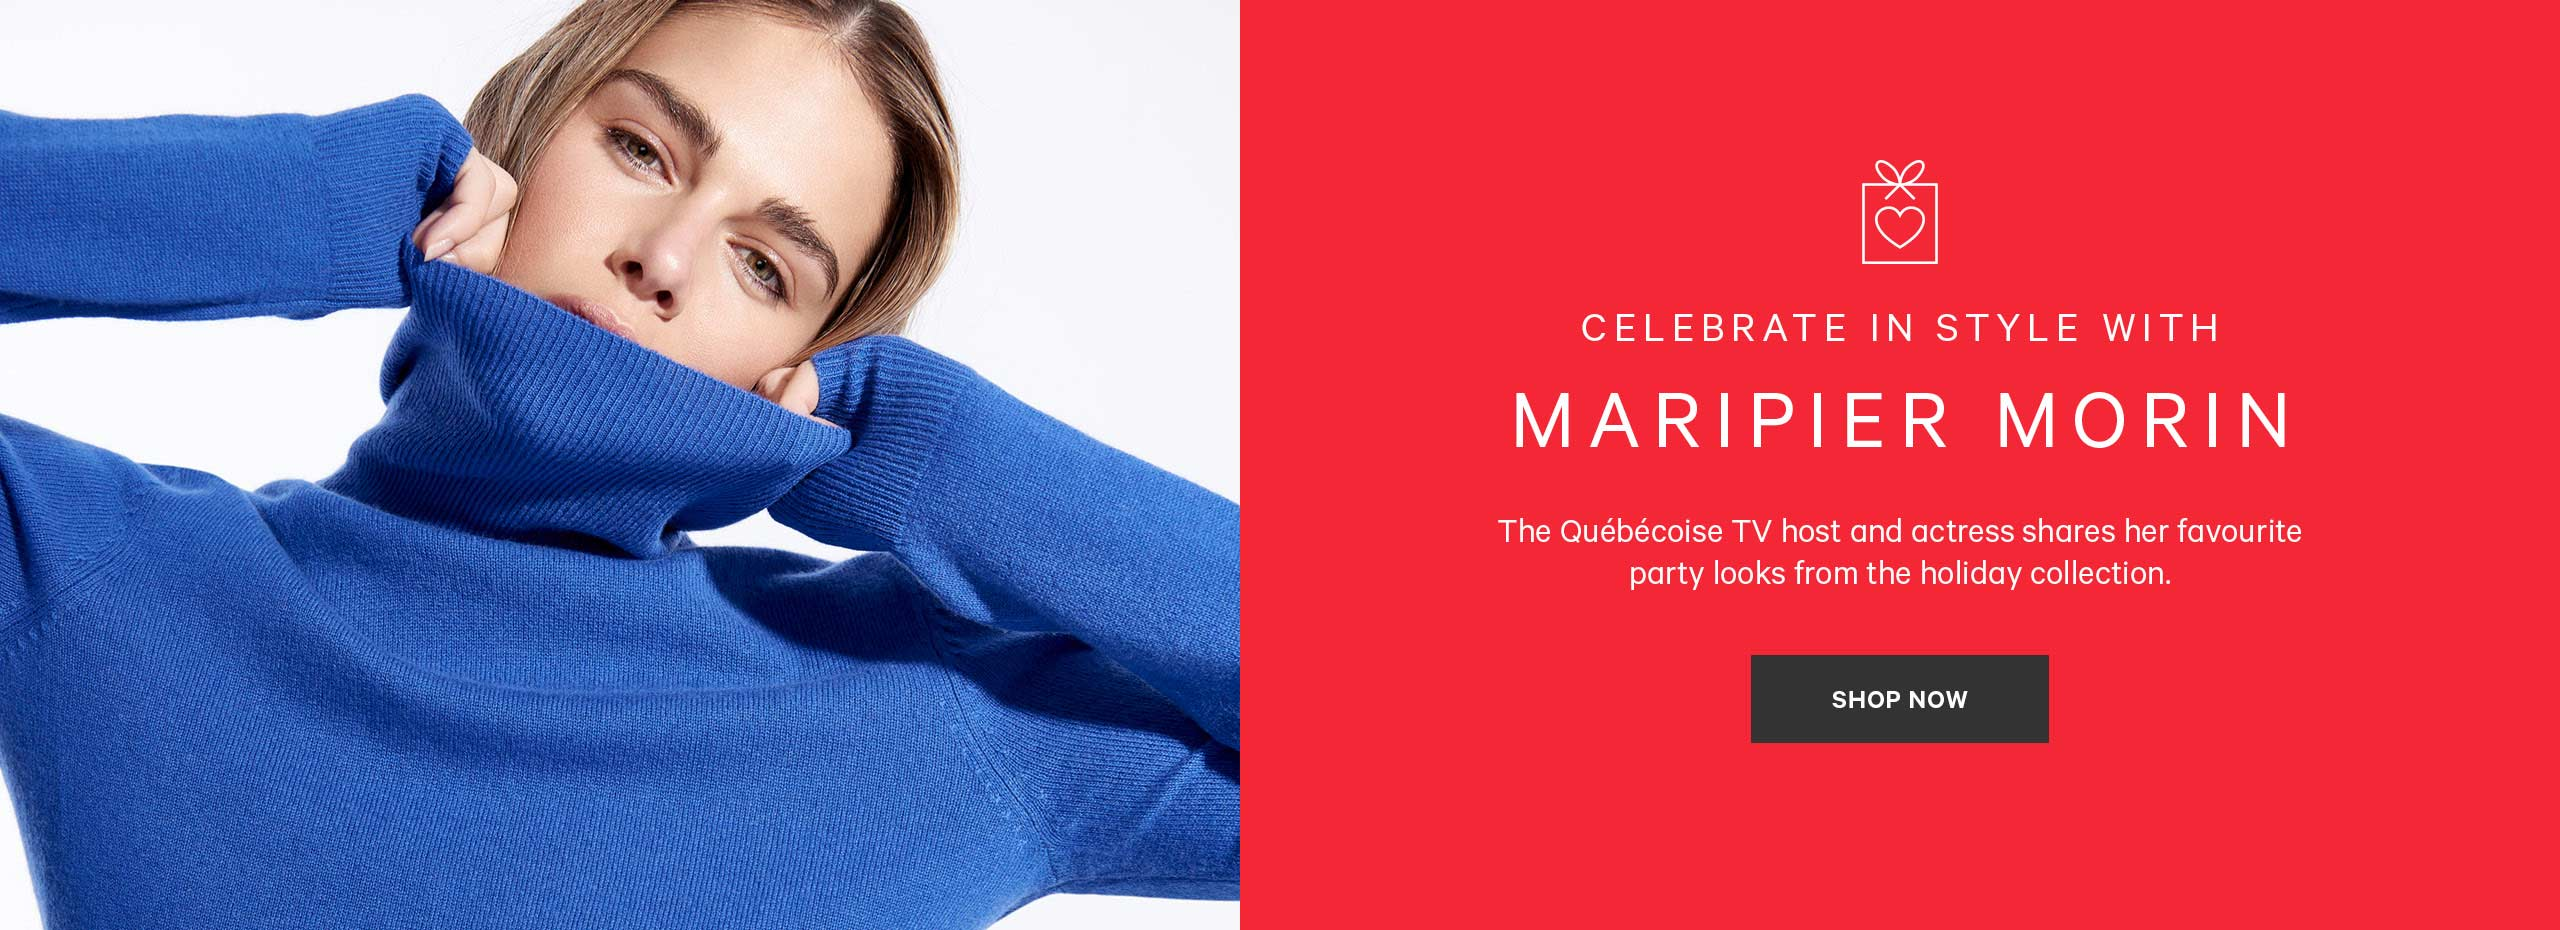 Celebrate in Style with Maripier Morin